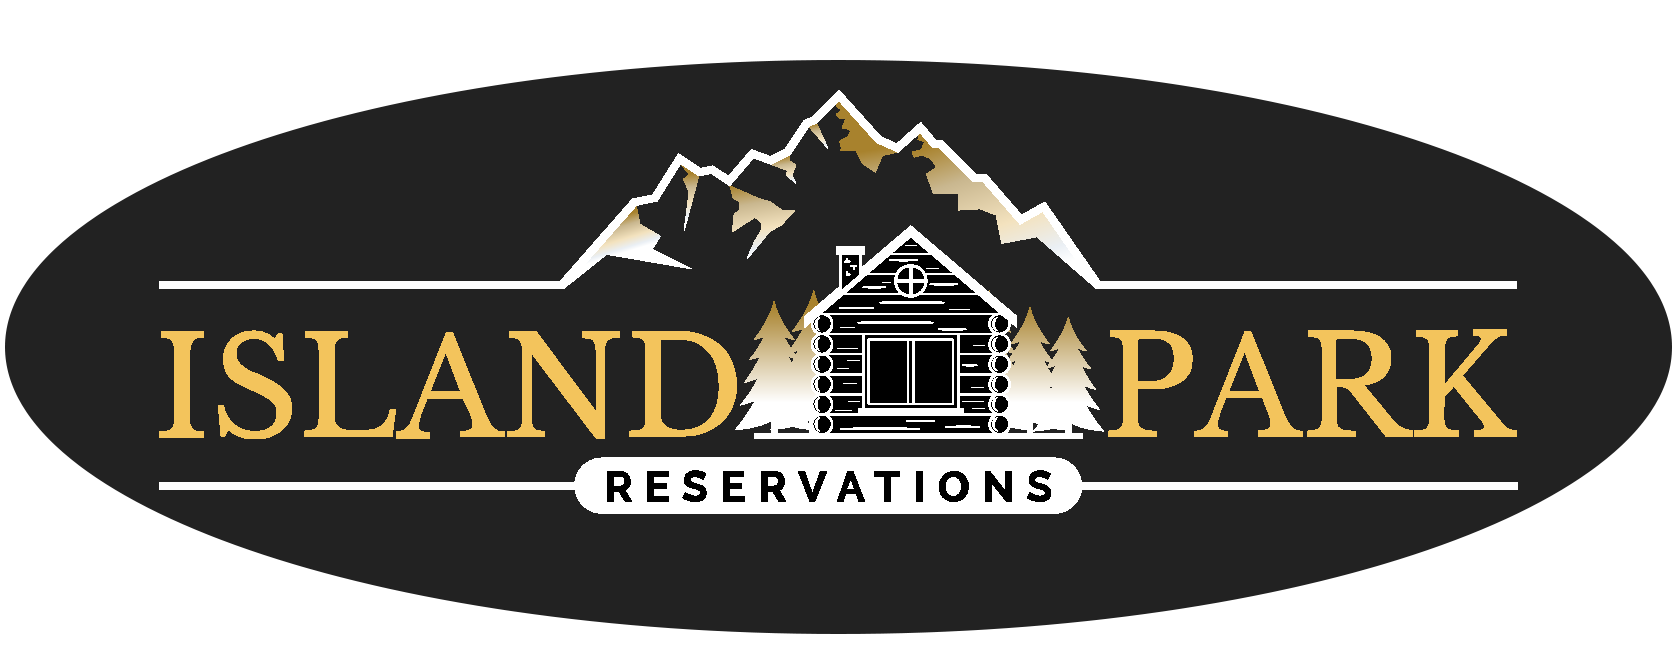 Island Park Reservations